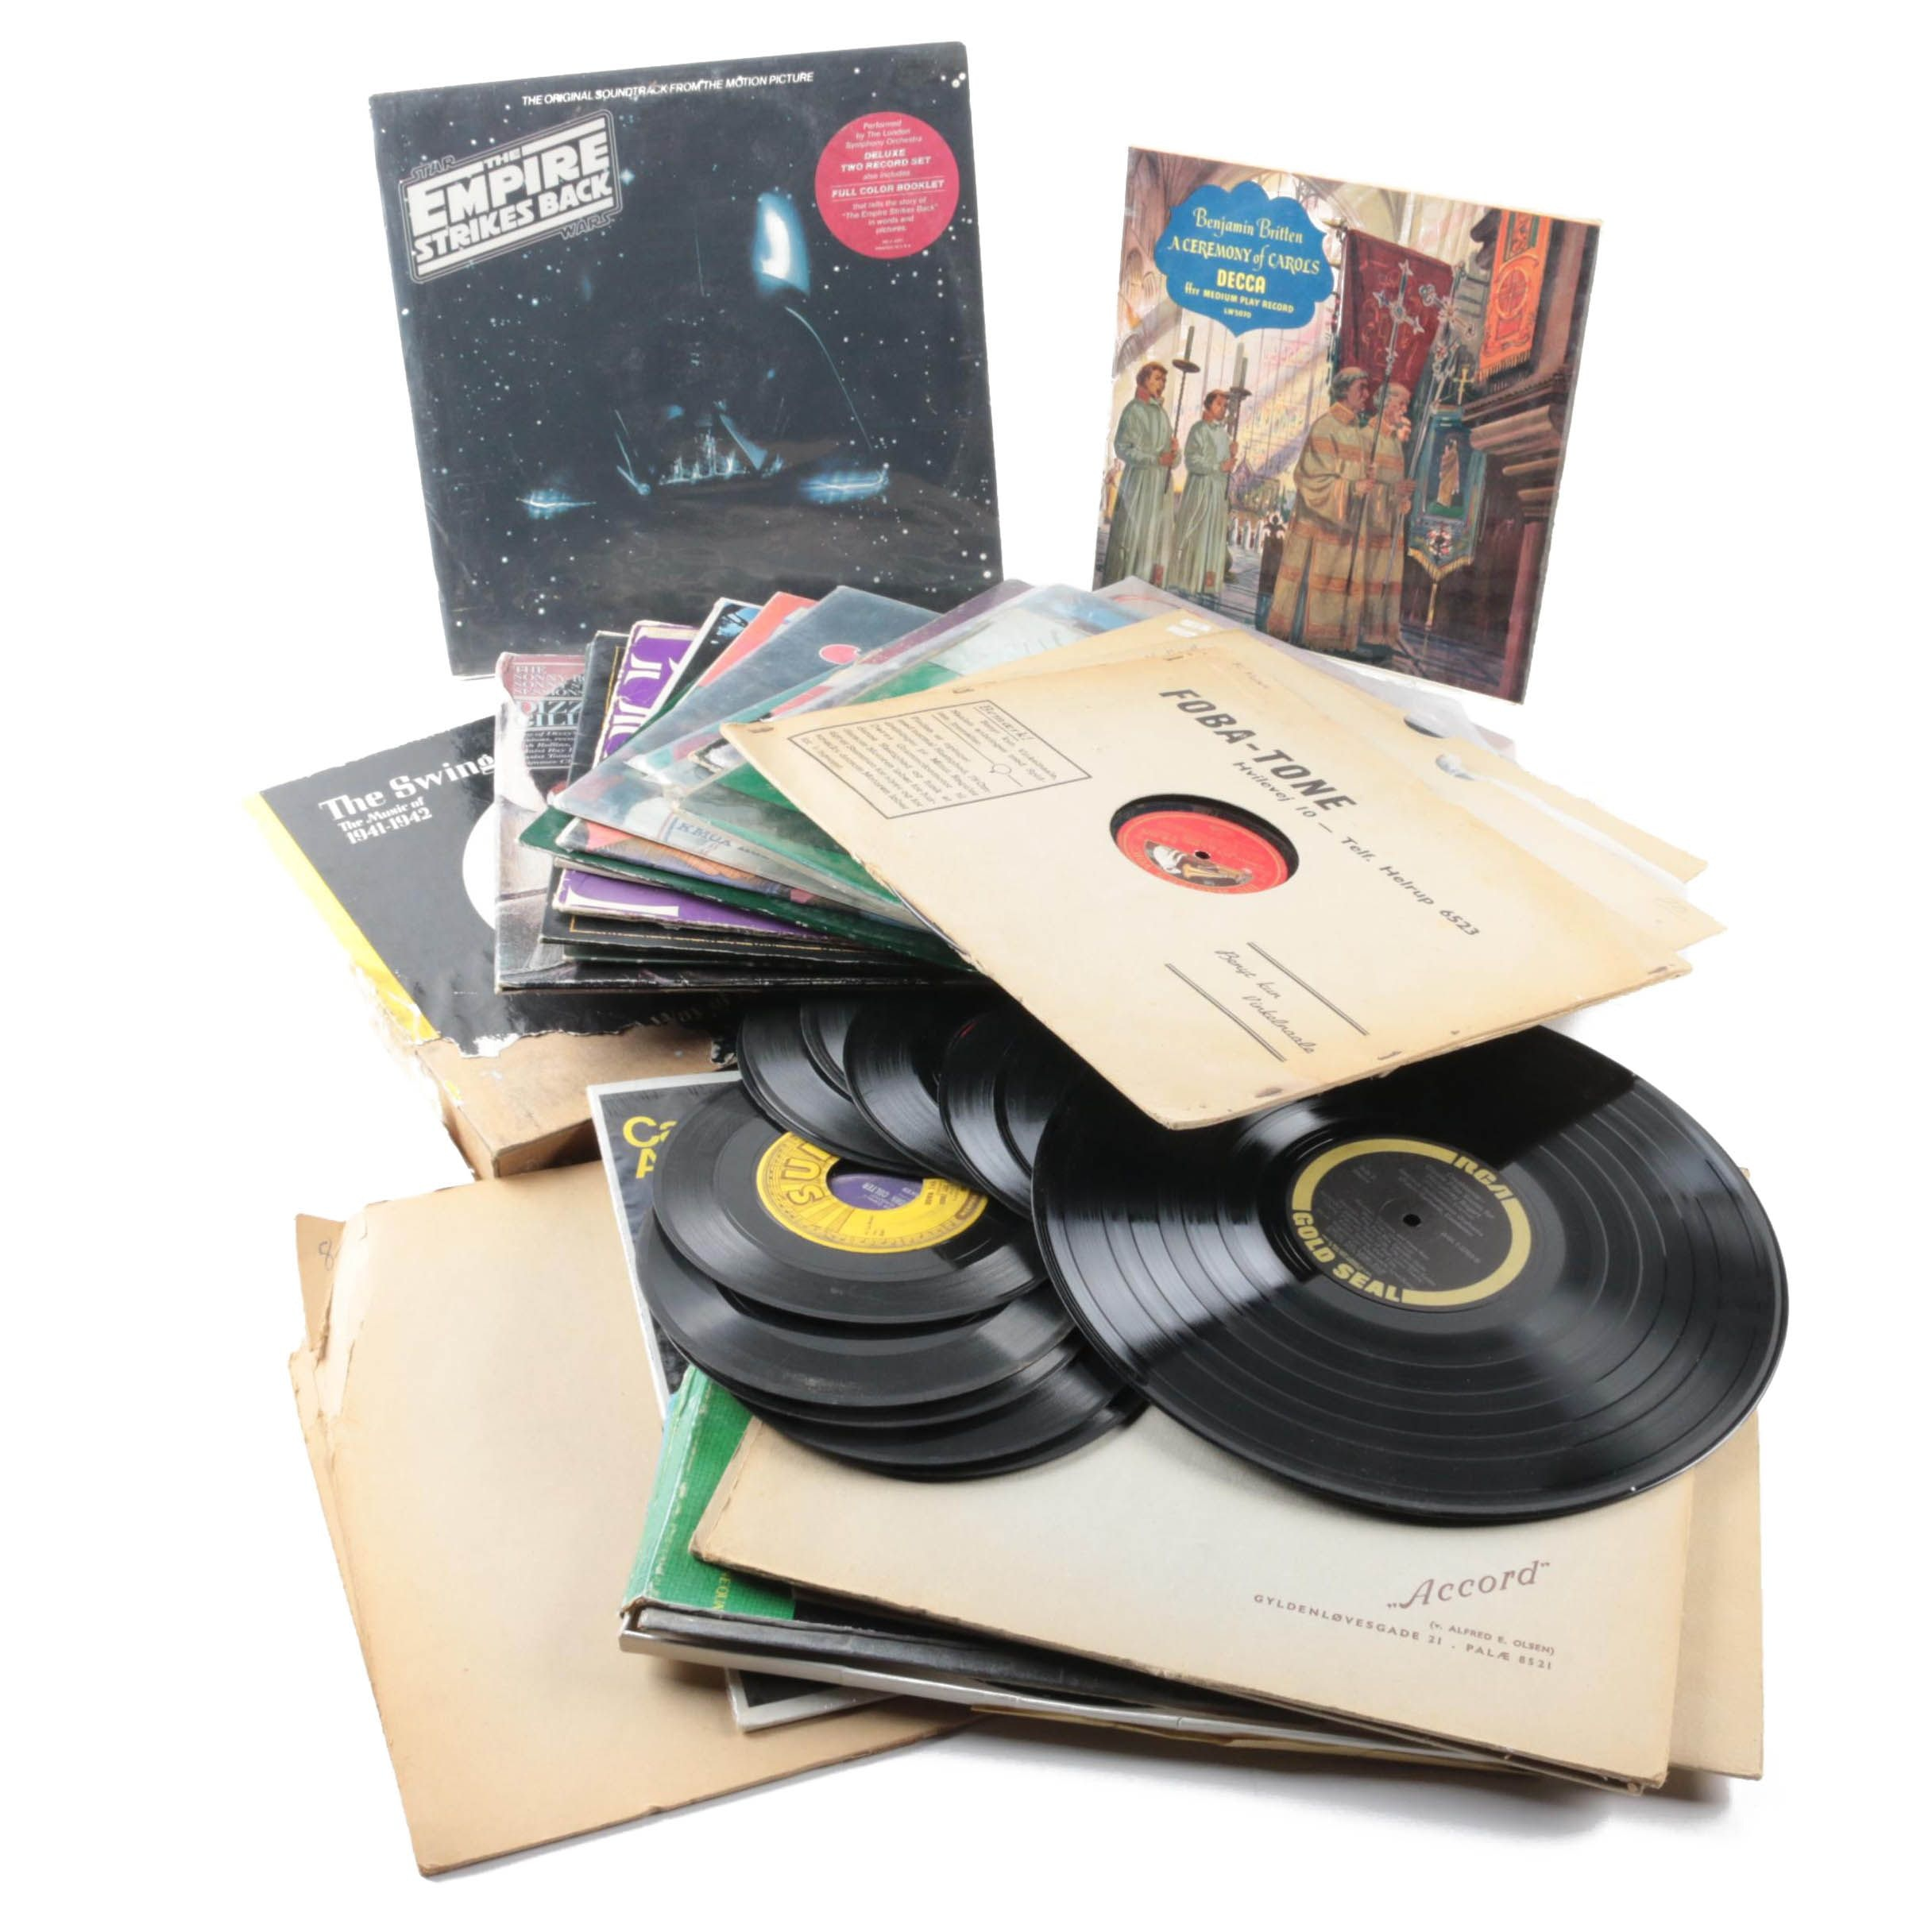 Tchaikovsky, Cannonball Adderley Quintet, National Lampoon, and Other Records